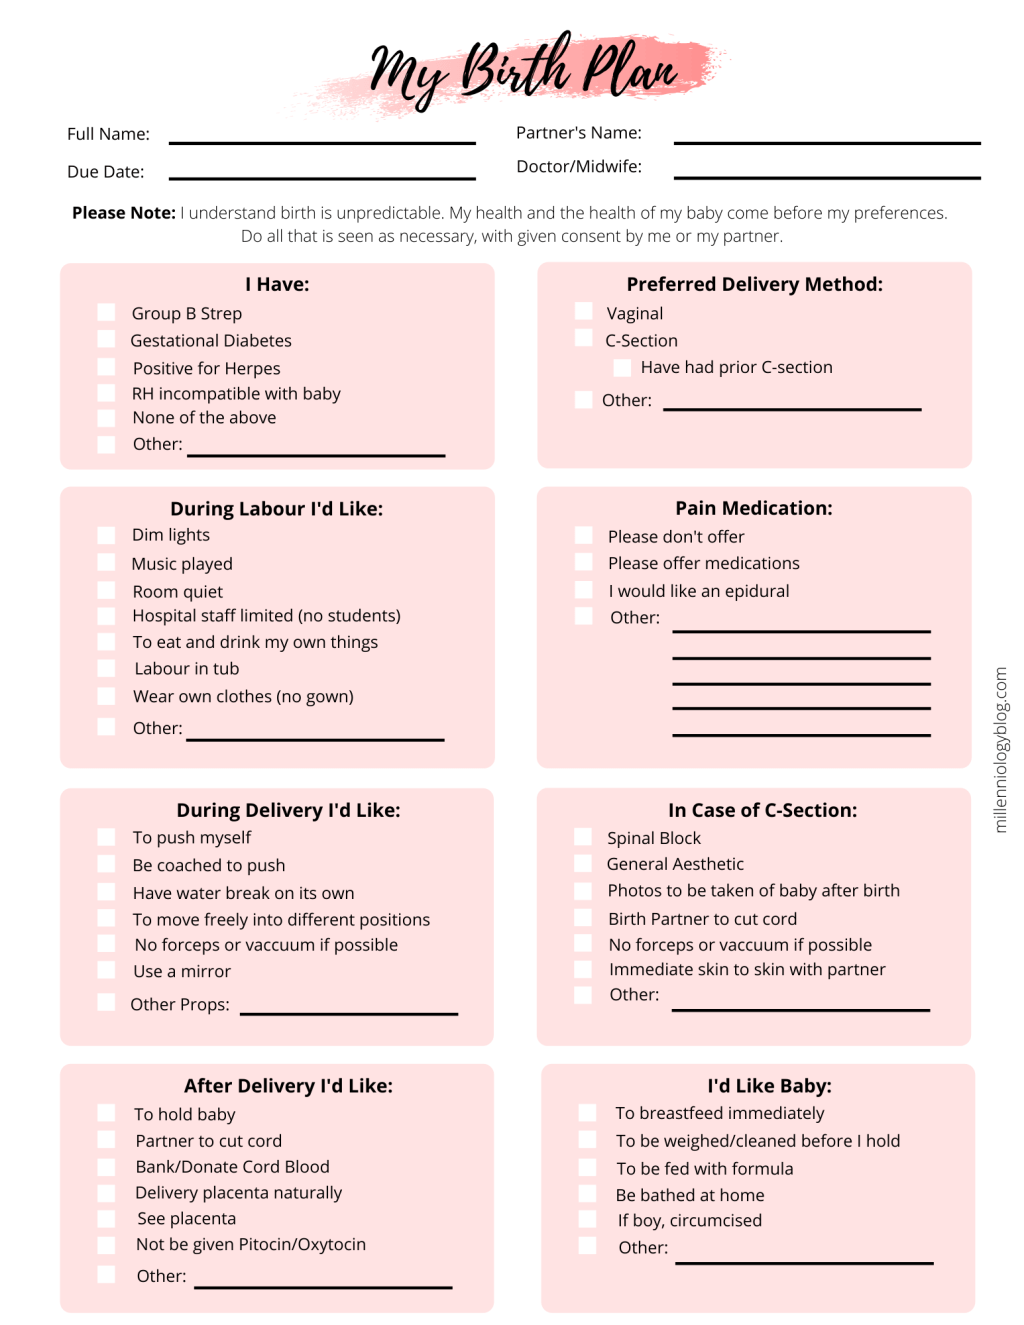 Simple Birth Plan Template - All You Need To Know ...